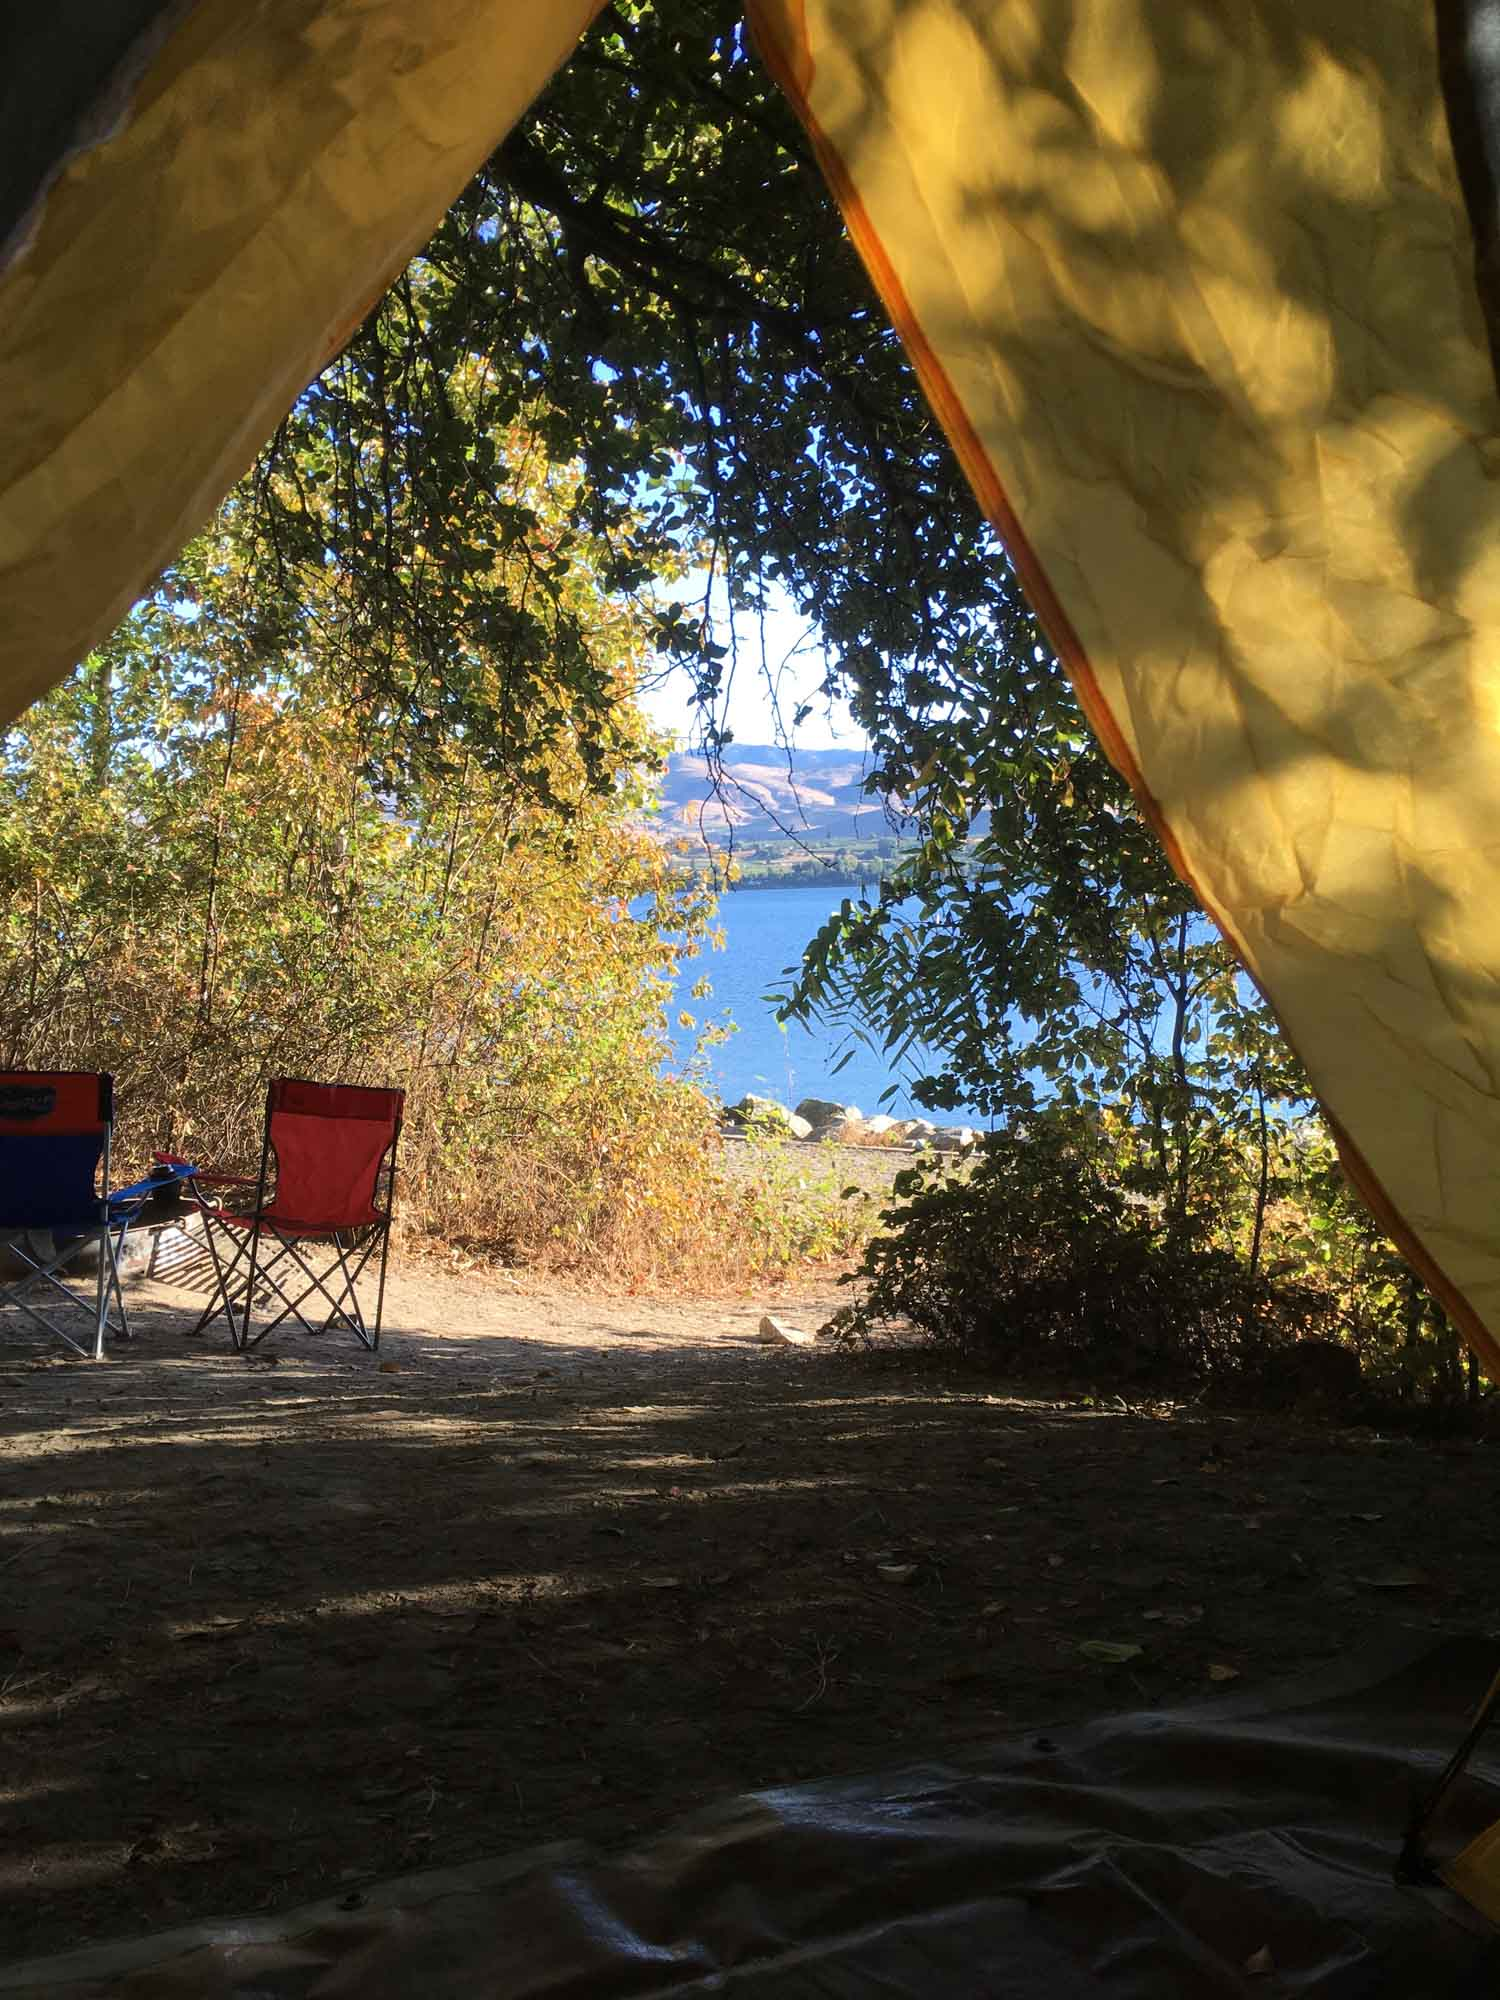 view from inside a tent of camp chairs in the forest beside a lak.